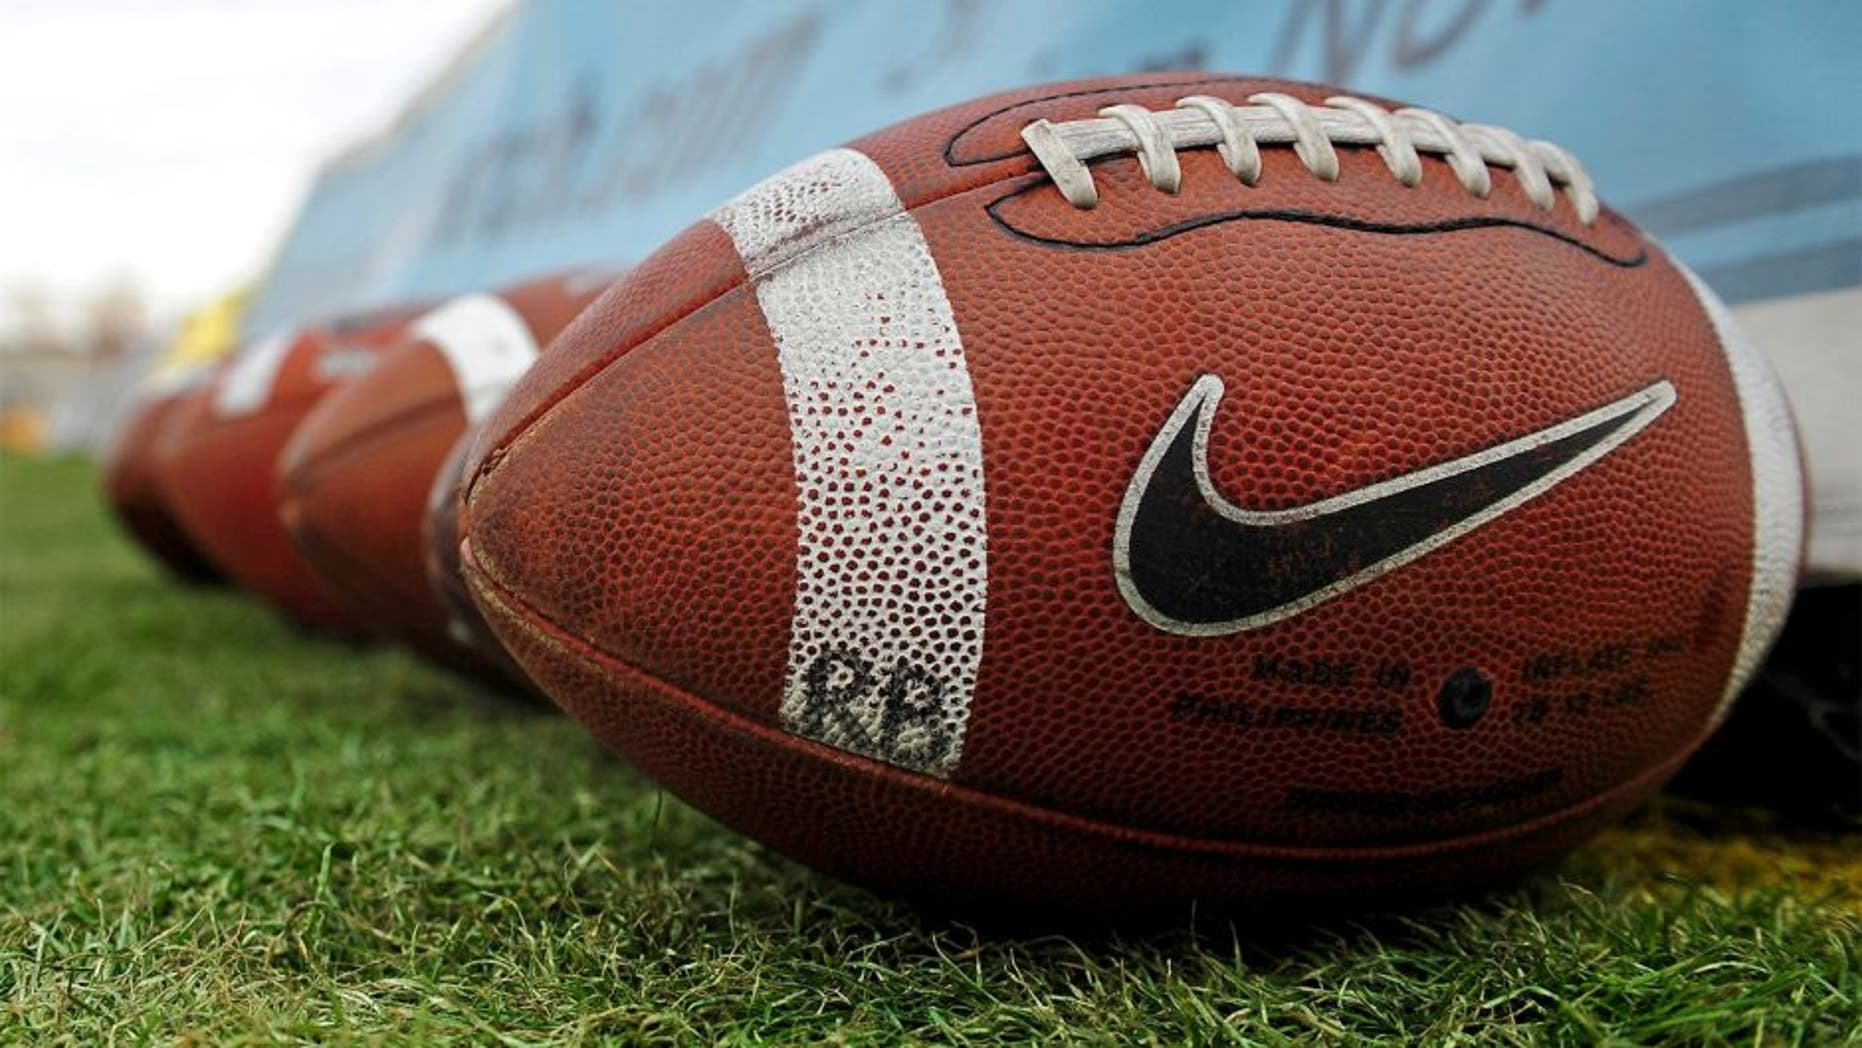 Dec. 18, 2010; Albuquerque, NM, USA; Detailed view of a Nike logo on a football prior to the game between the UTEP Miners against the BYU Cougars in the 2010 New Mexico Bowl at University Stadium. Mandatory Credit: Mark J. Rebilas-USA TODAY Sports